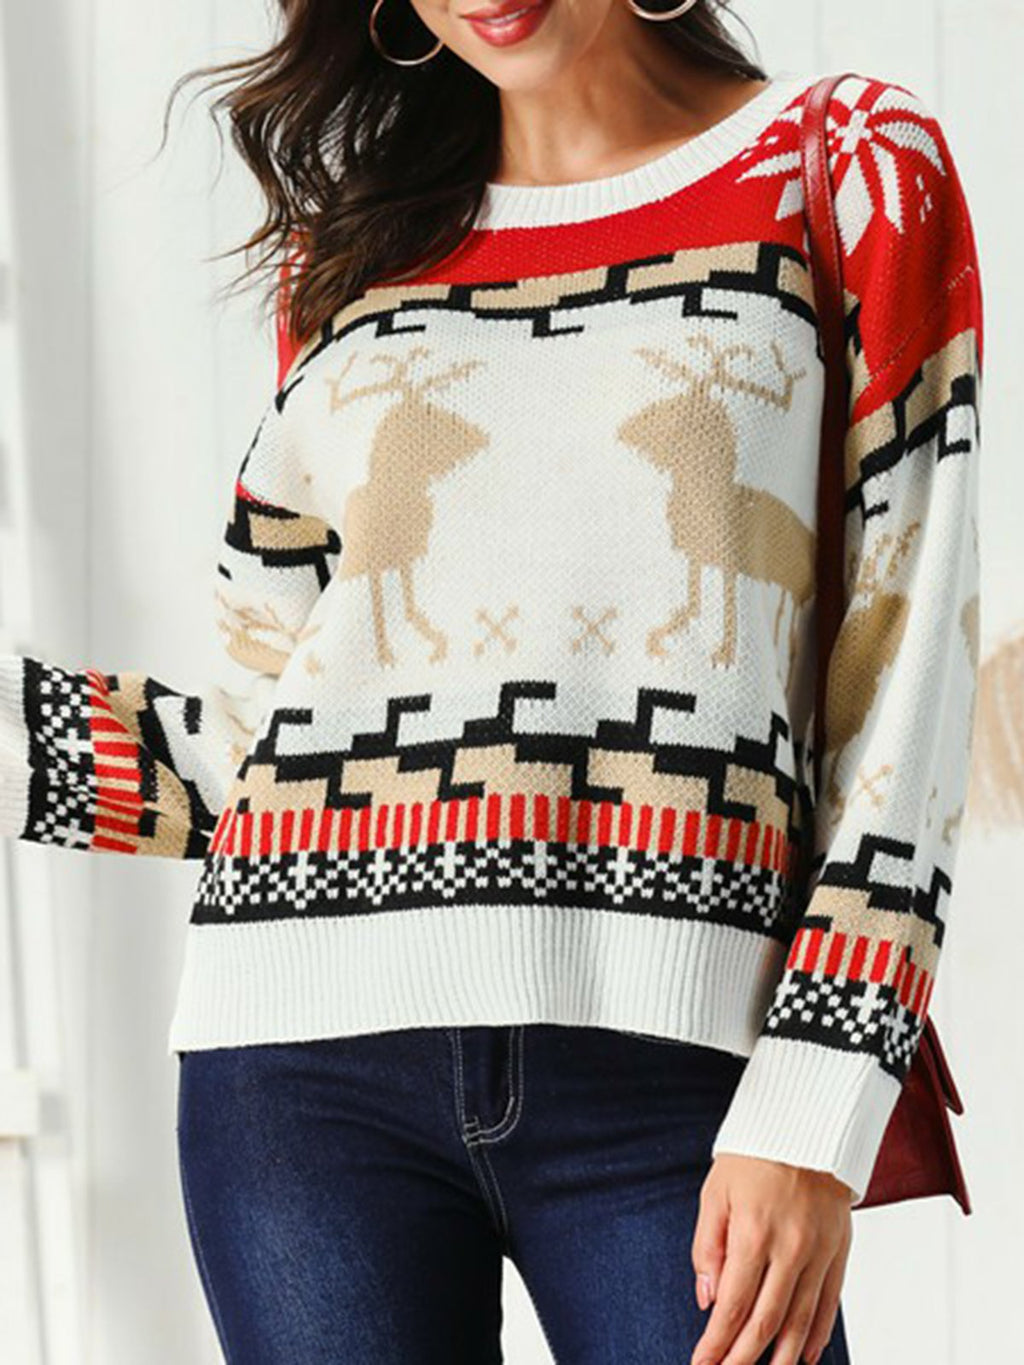 White Long Sleeve Crew Neck Sweater